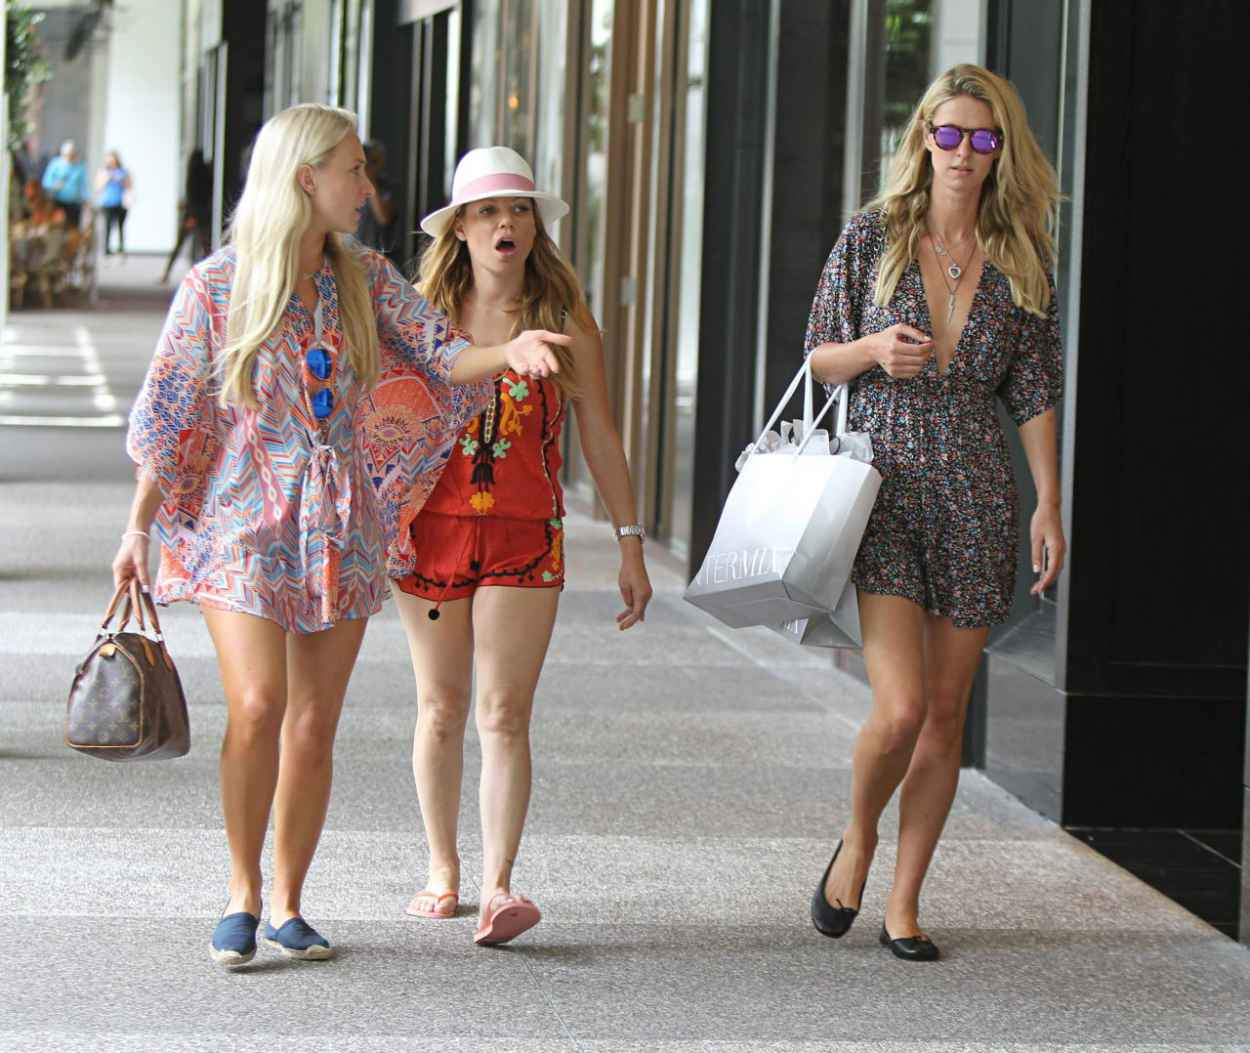 Nicky Hilton Shopping With a Friend at Bal Harbour Mall in Miami, June 2015-3